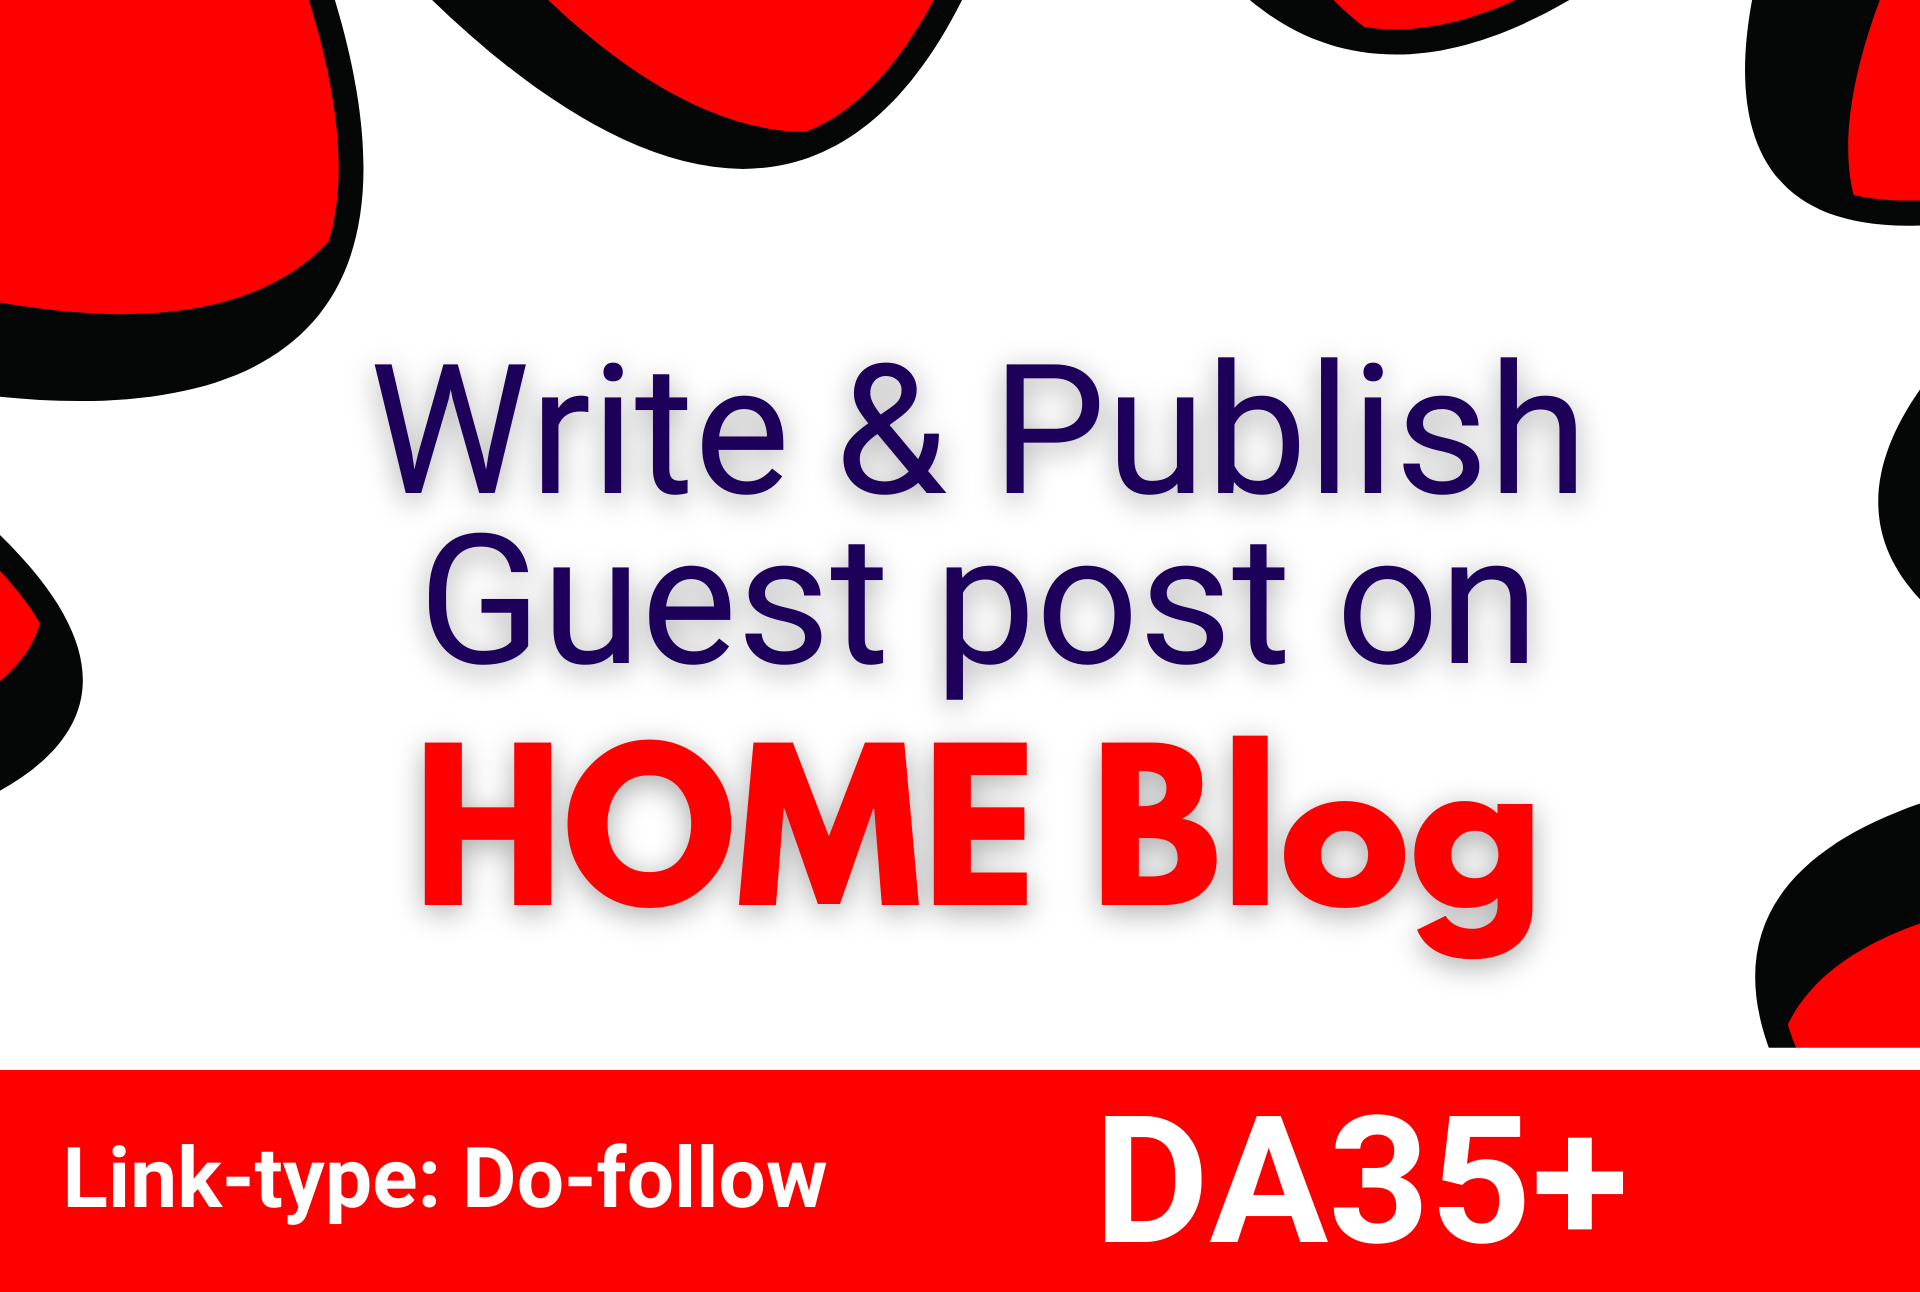 I will do guest post on home blog